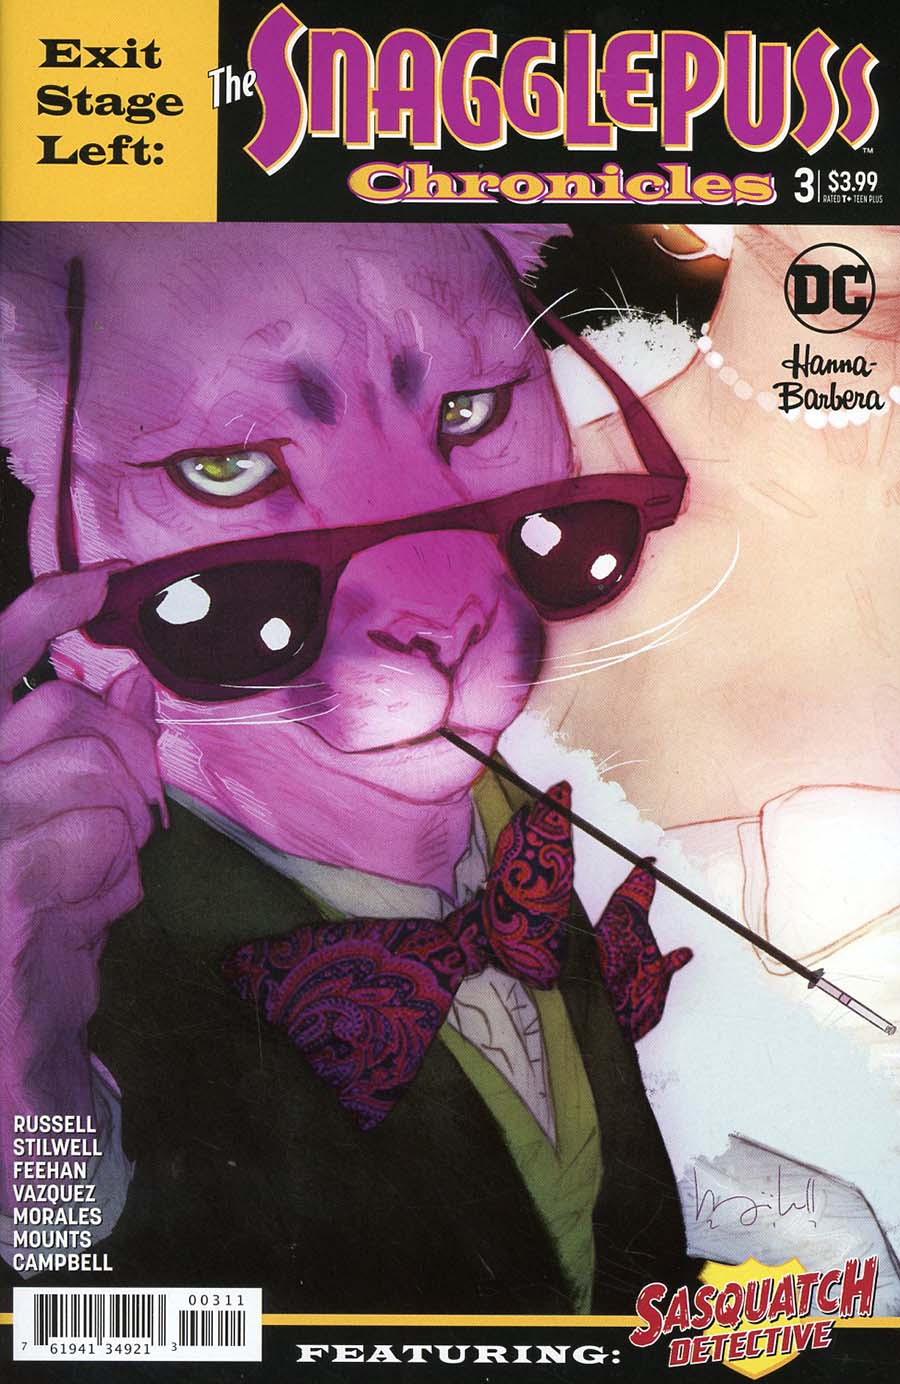 Exit Stage Left The Snagglepuss Chronicles #3 Cover A Regular Ben Caldwell Cover